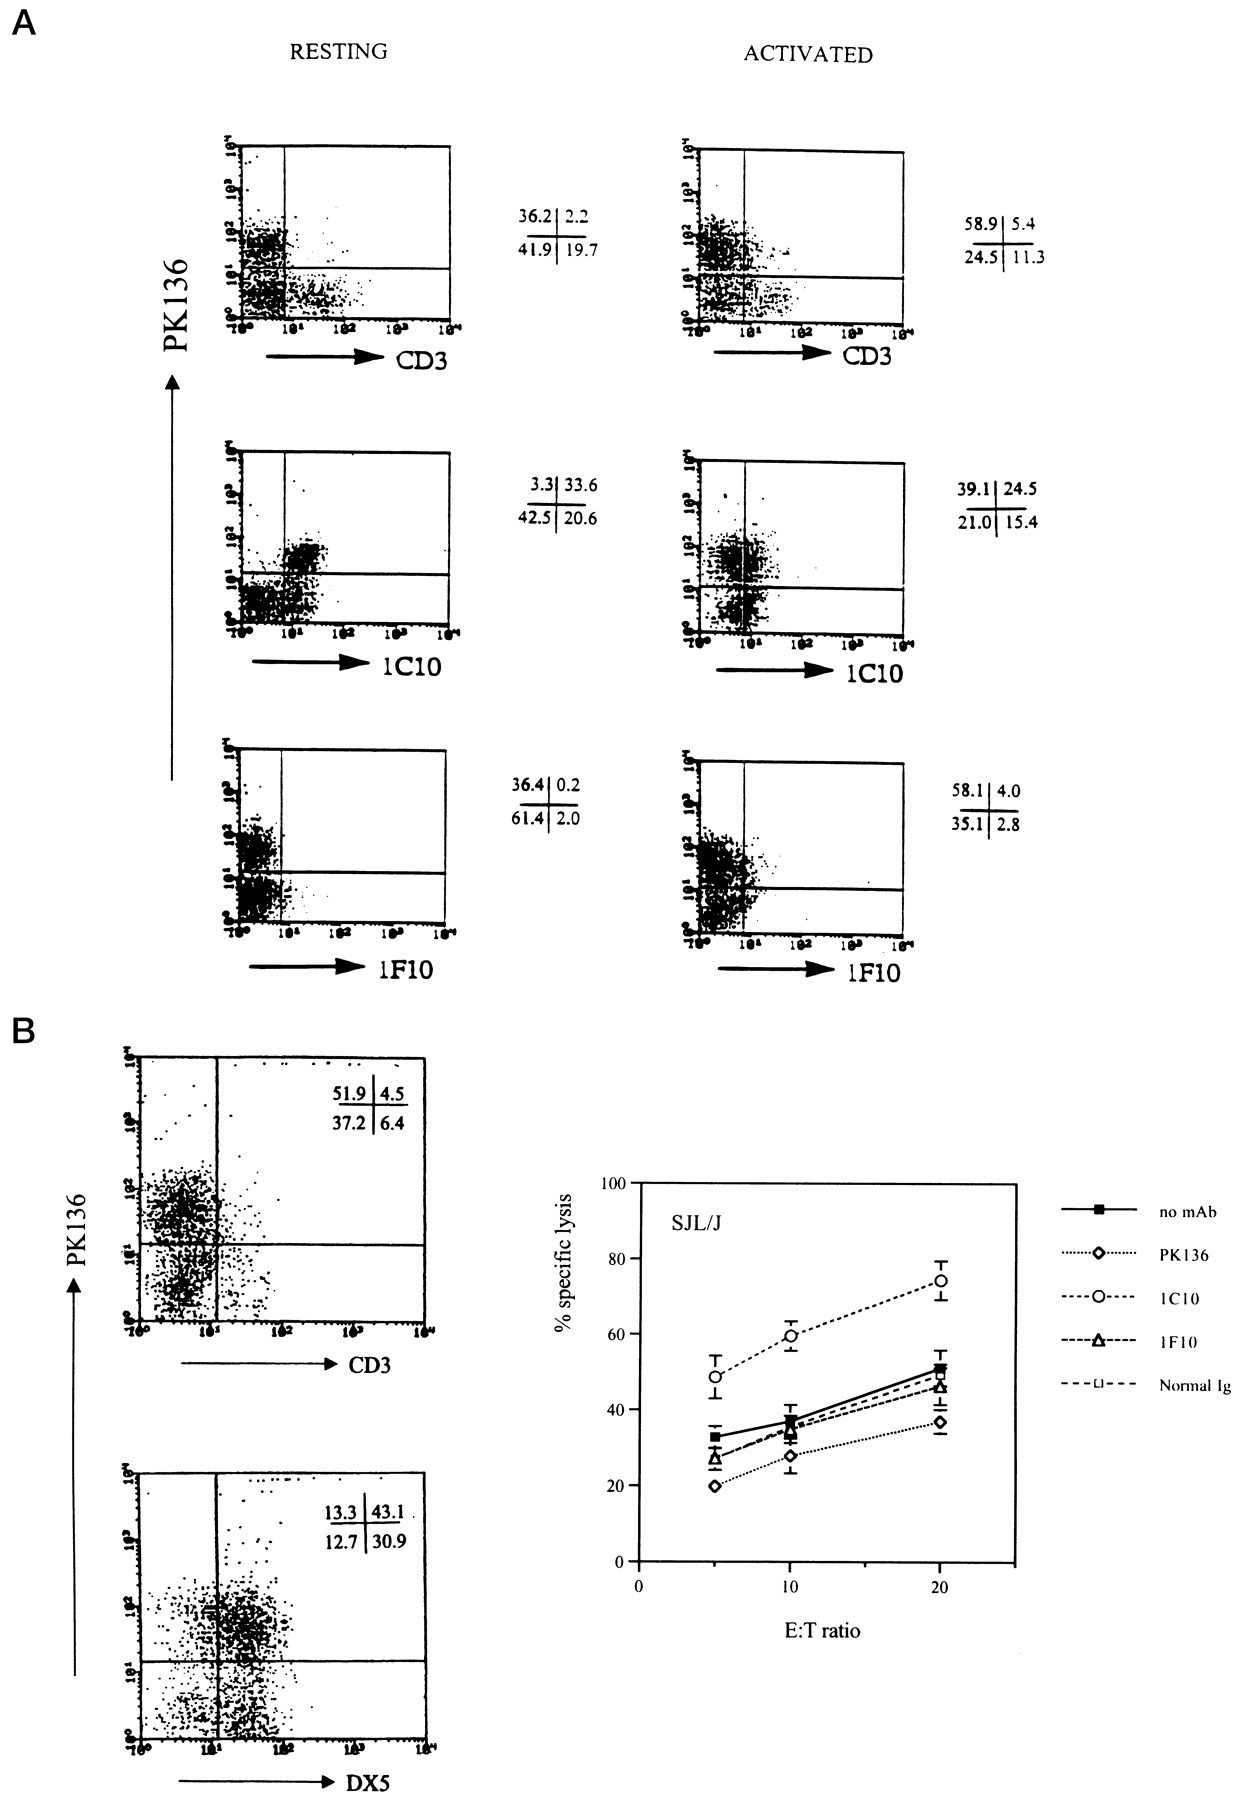 The Nkr P1b Gene Product Is An Inhibitory Receptor On Sjl J Nk Cells 1911 Receiver Diagram Free Download Wiring Diagrams Pictures Figure Open In New Tab Powerpoint